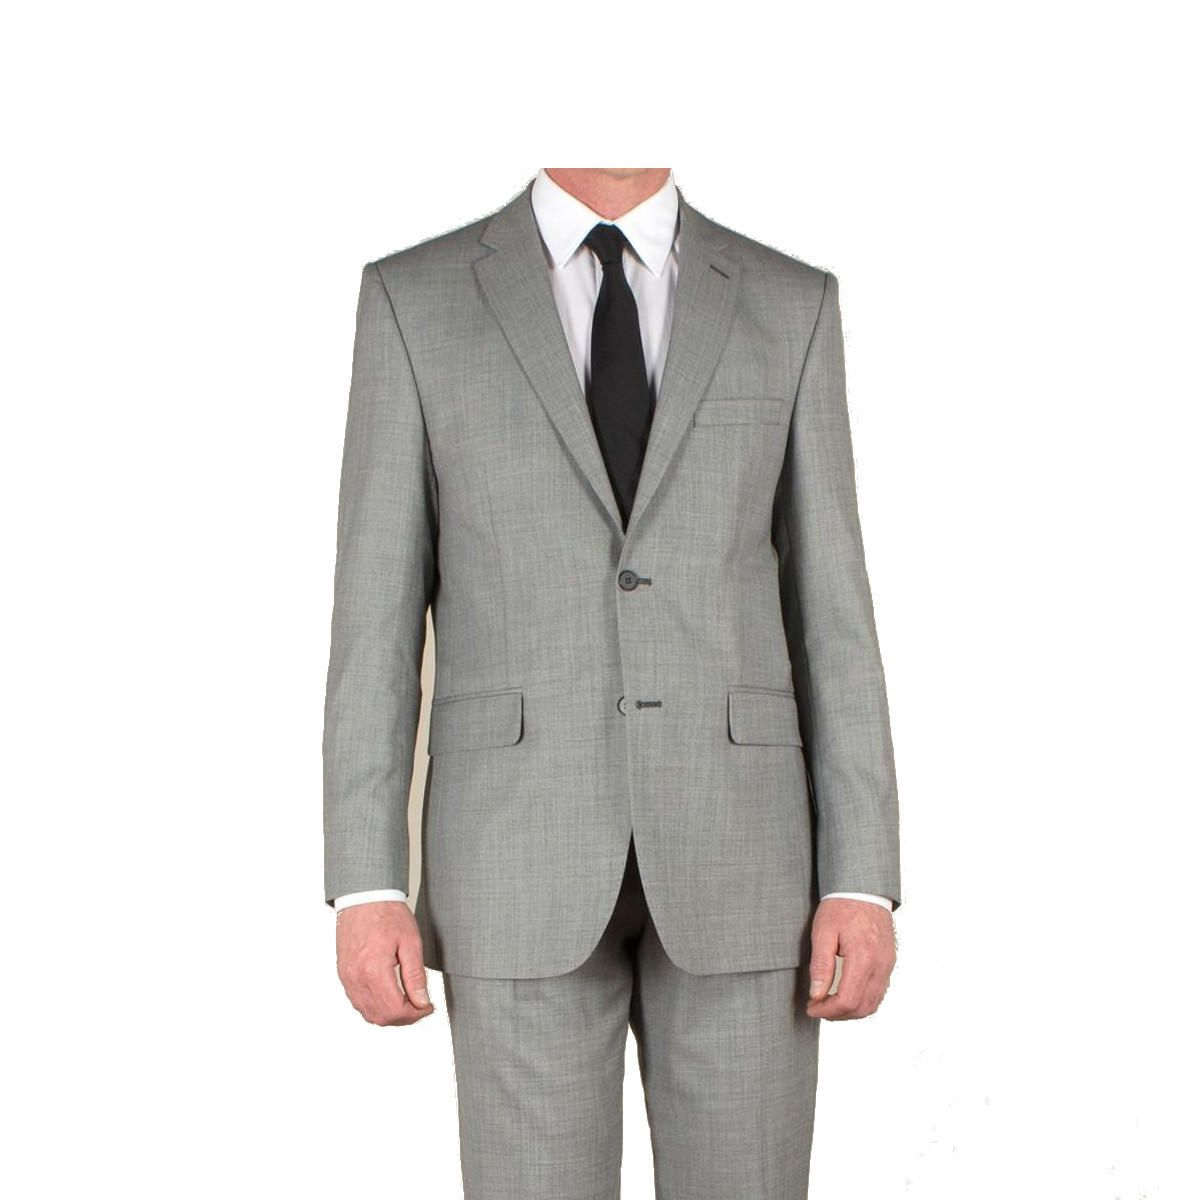 Suits - Buy Men's Suits Online | Jumia Nigeria